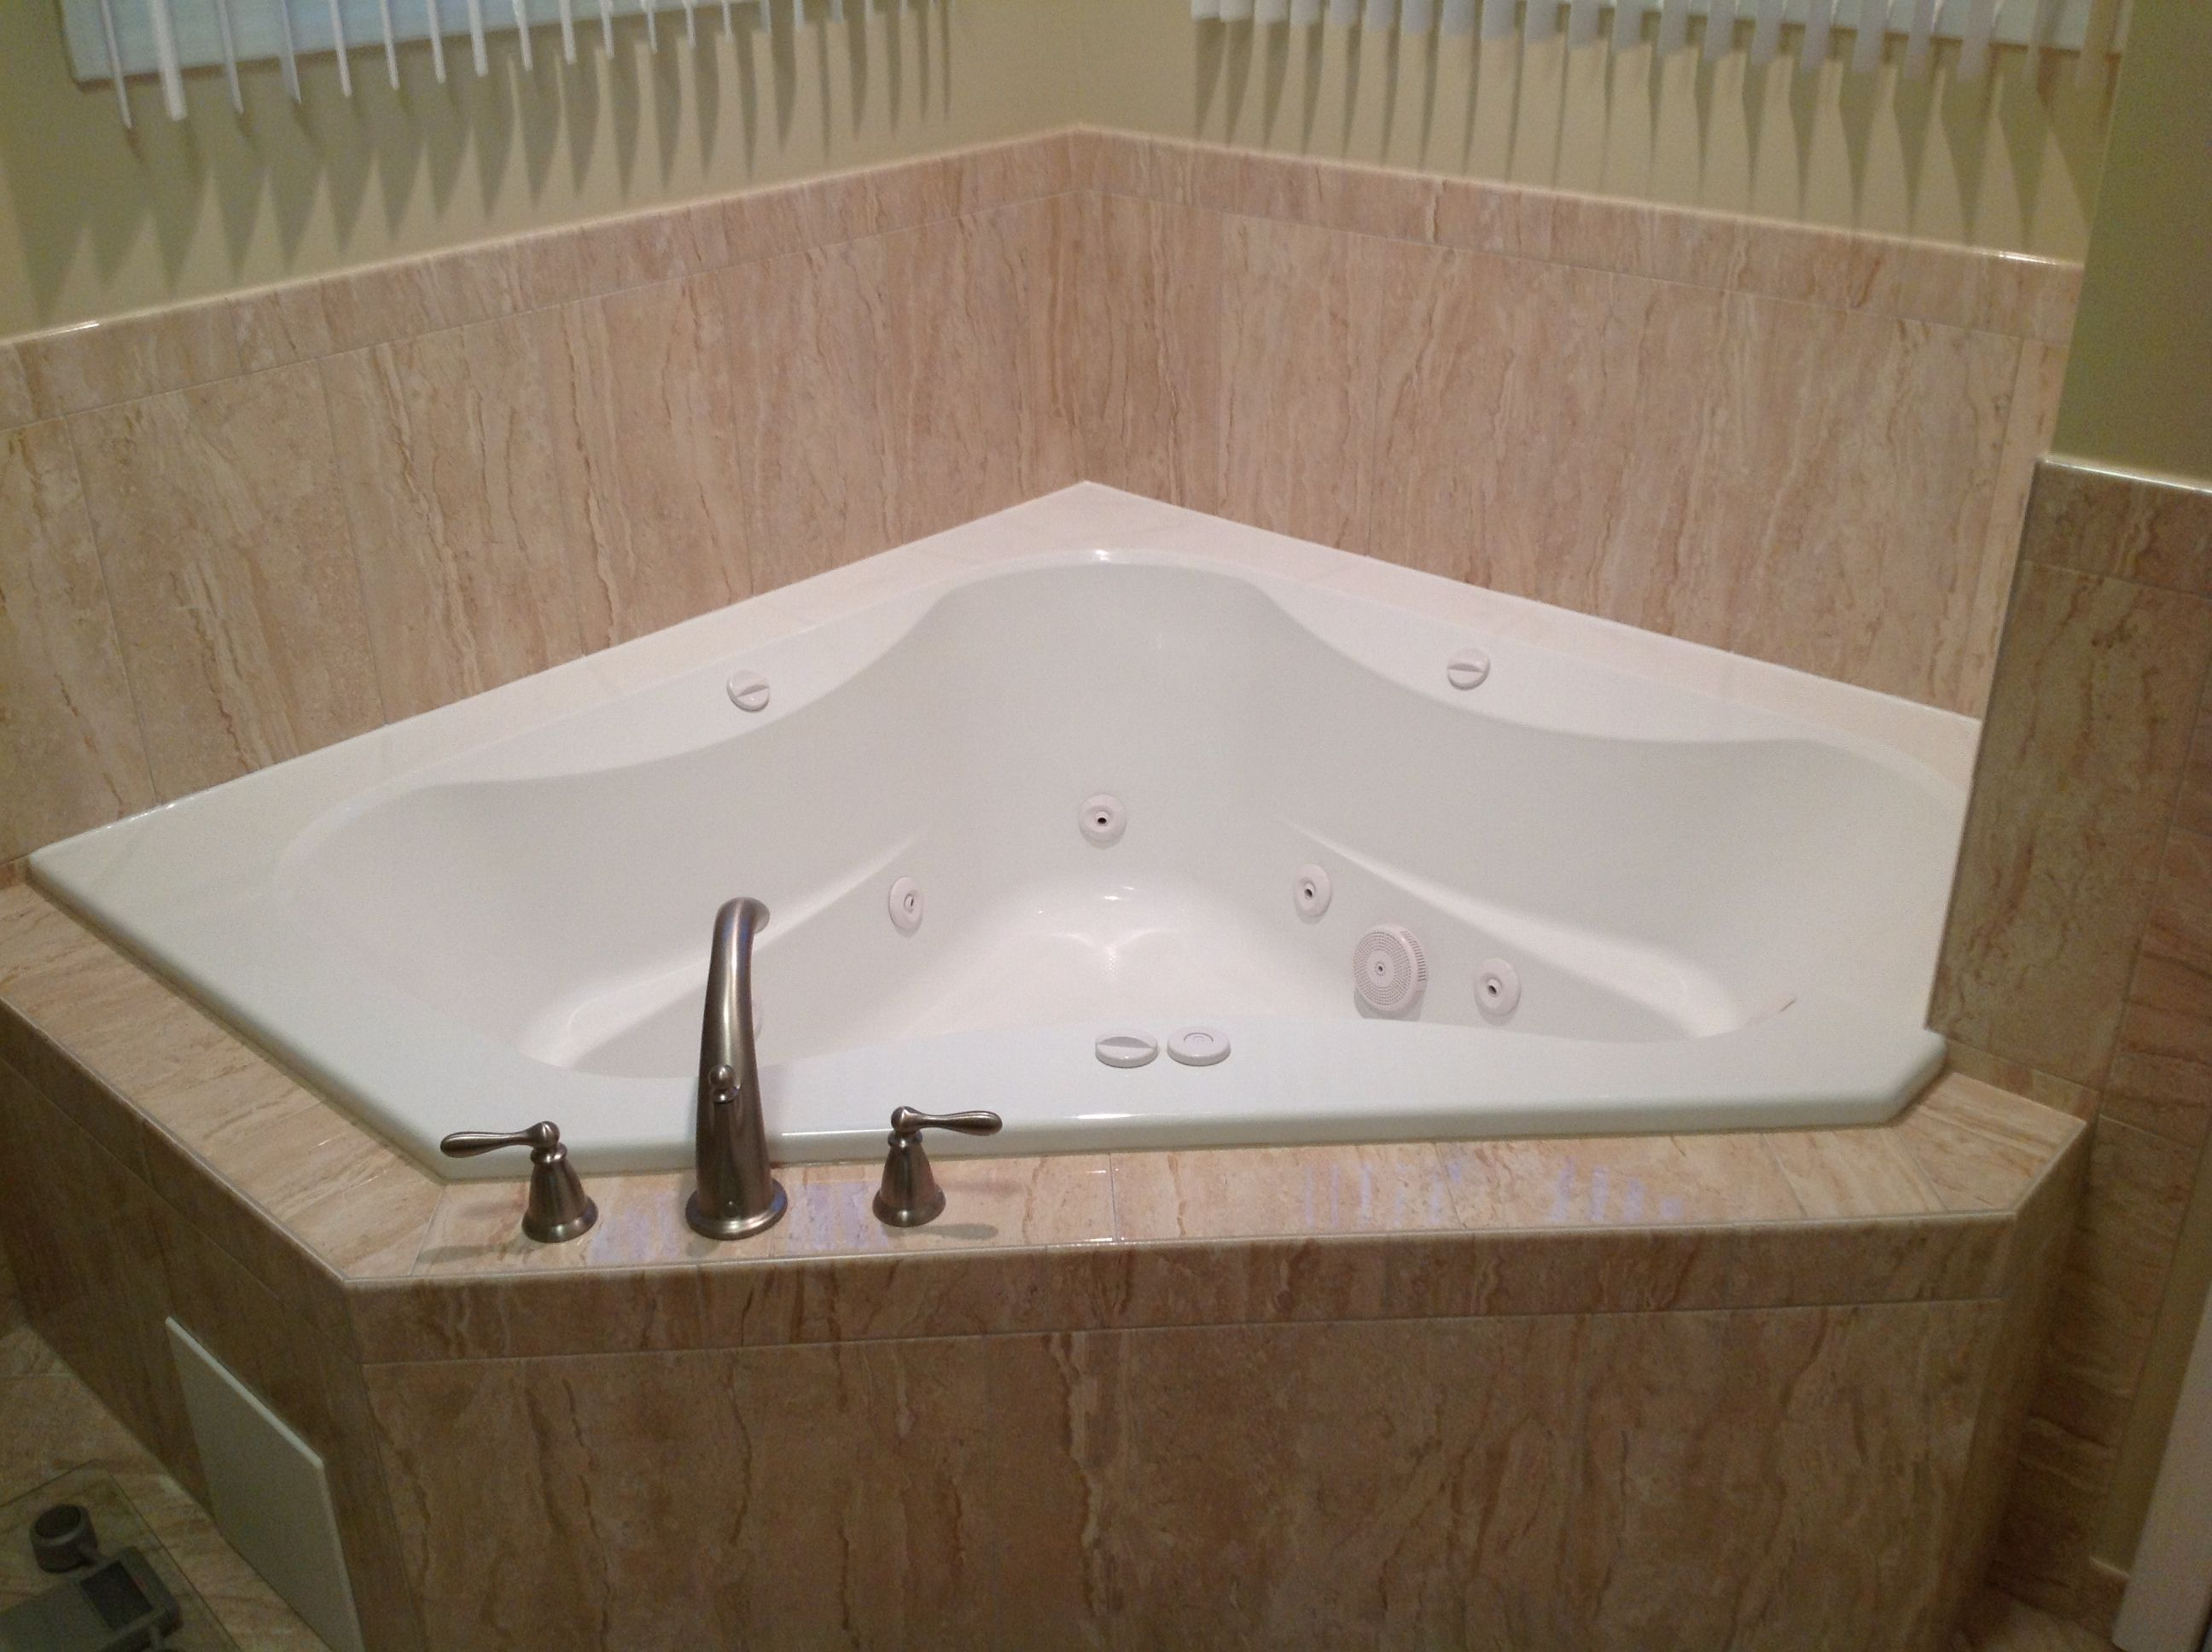 New corner jacuzzi instead of corner soaking tub | Our new Master ...